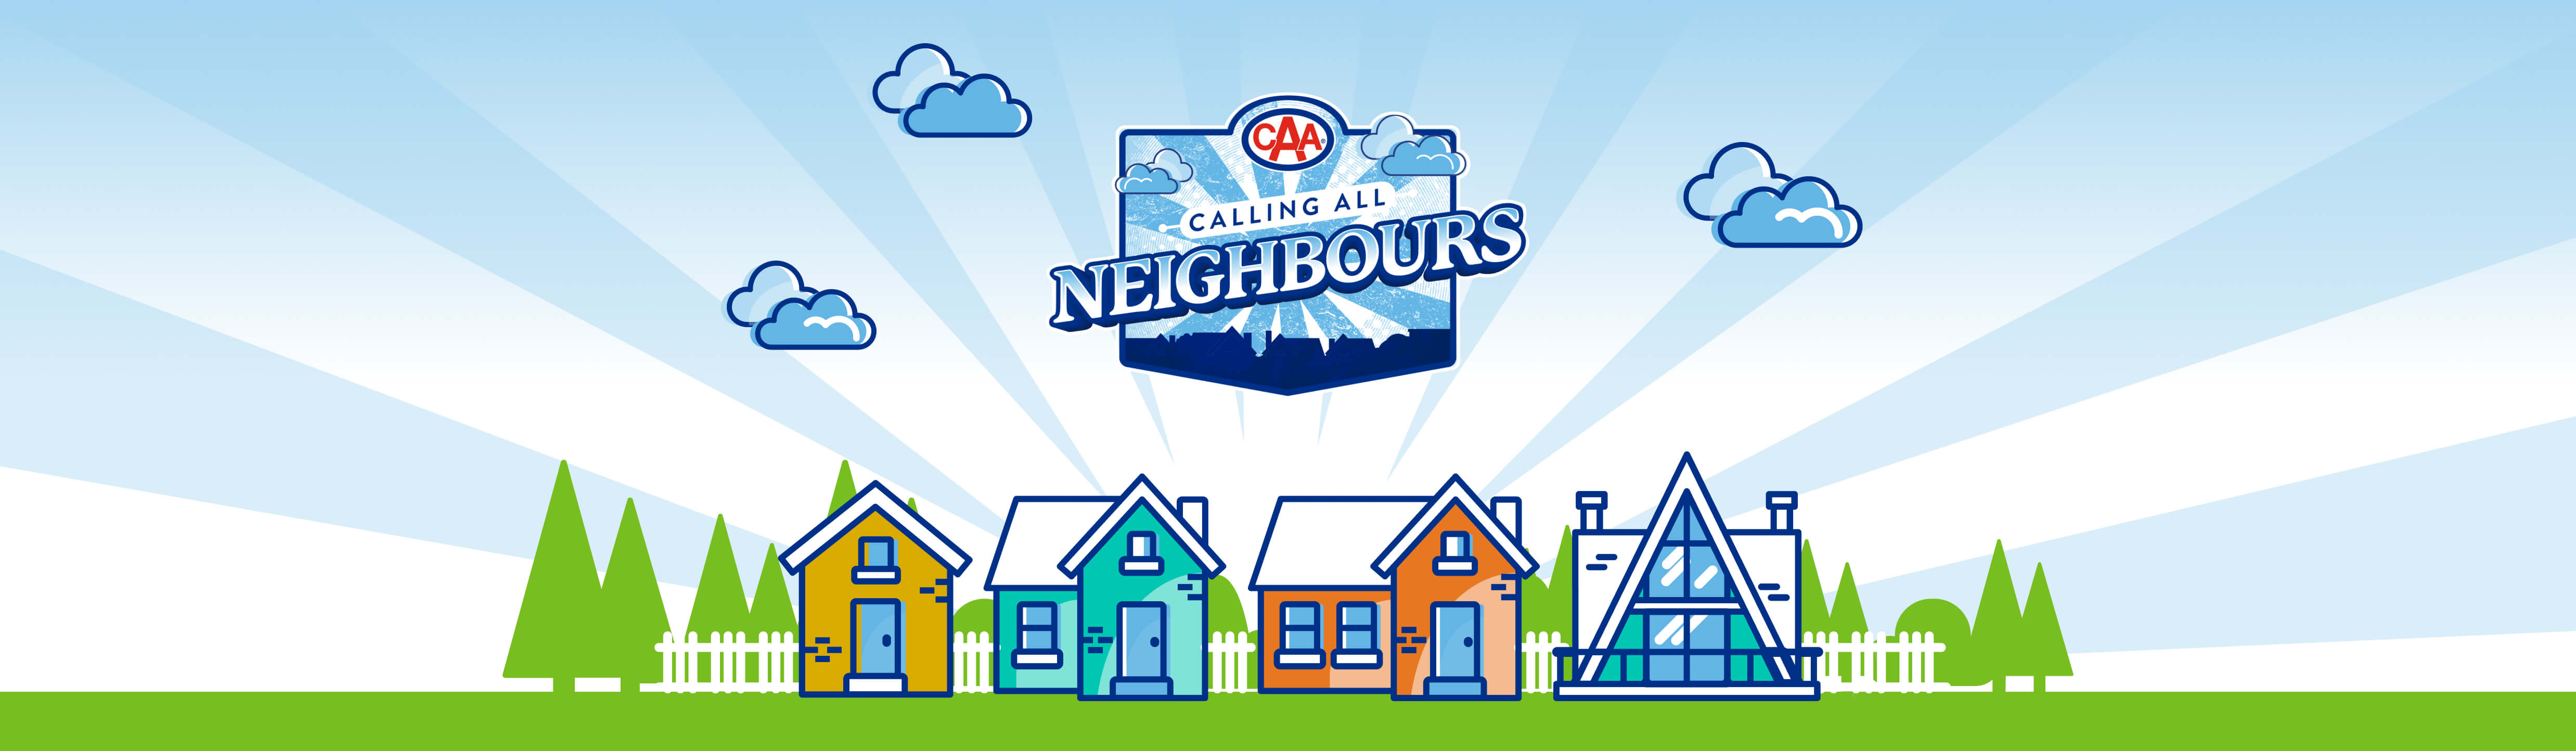 Custom CAA Calling All Neighbours creative banner that shows the logo, houses, and clouds.